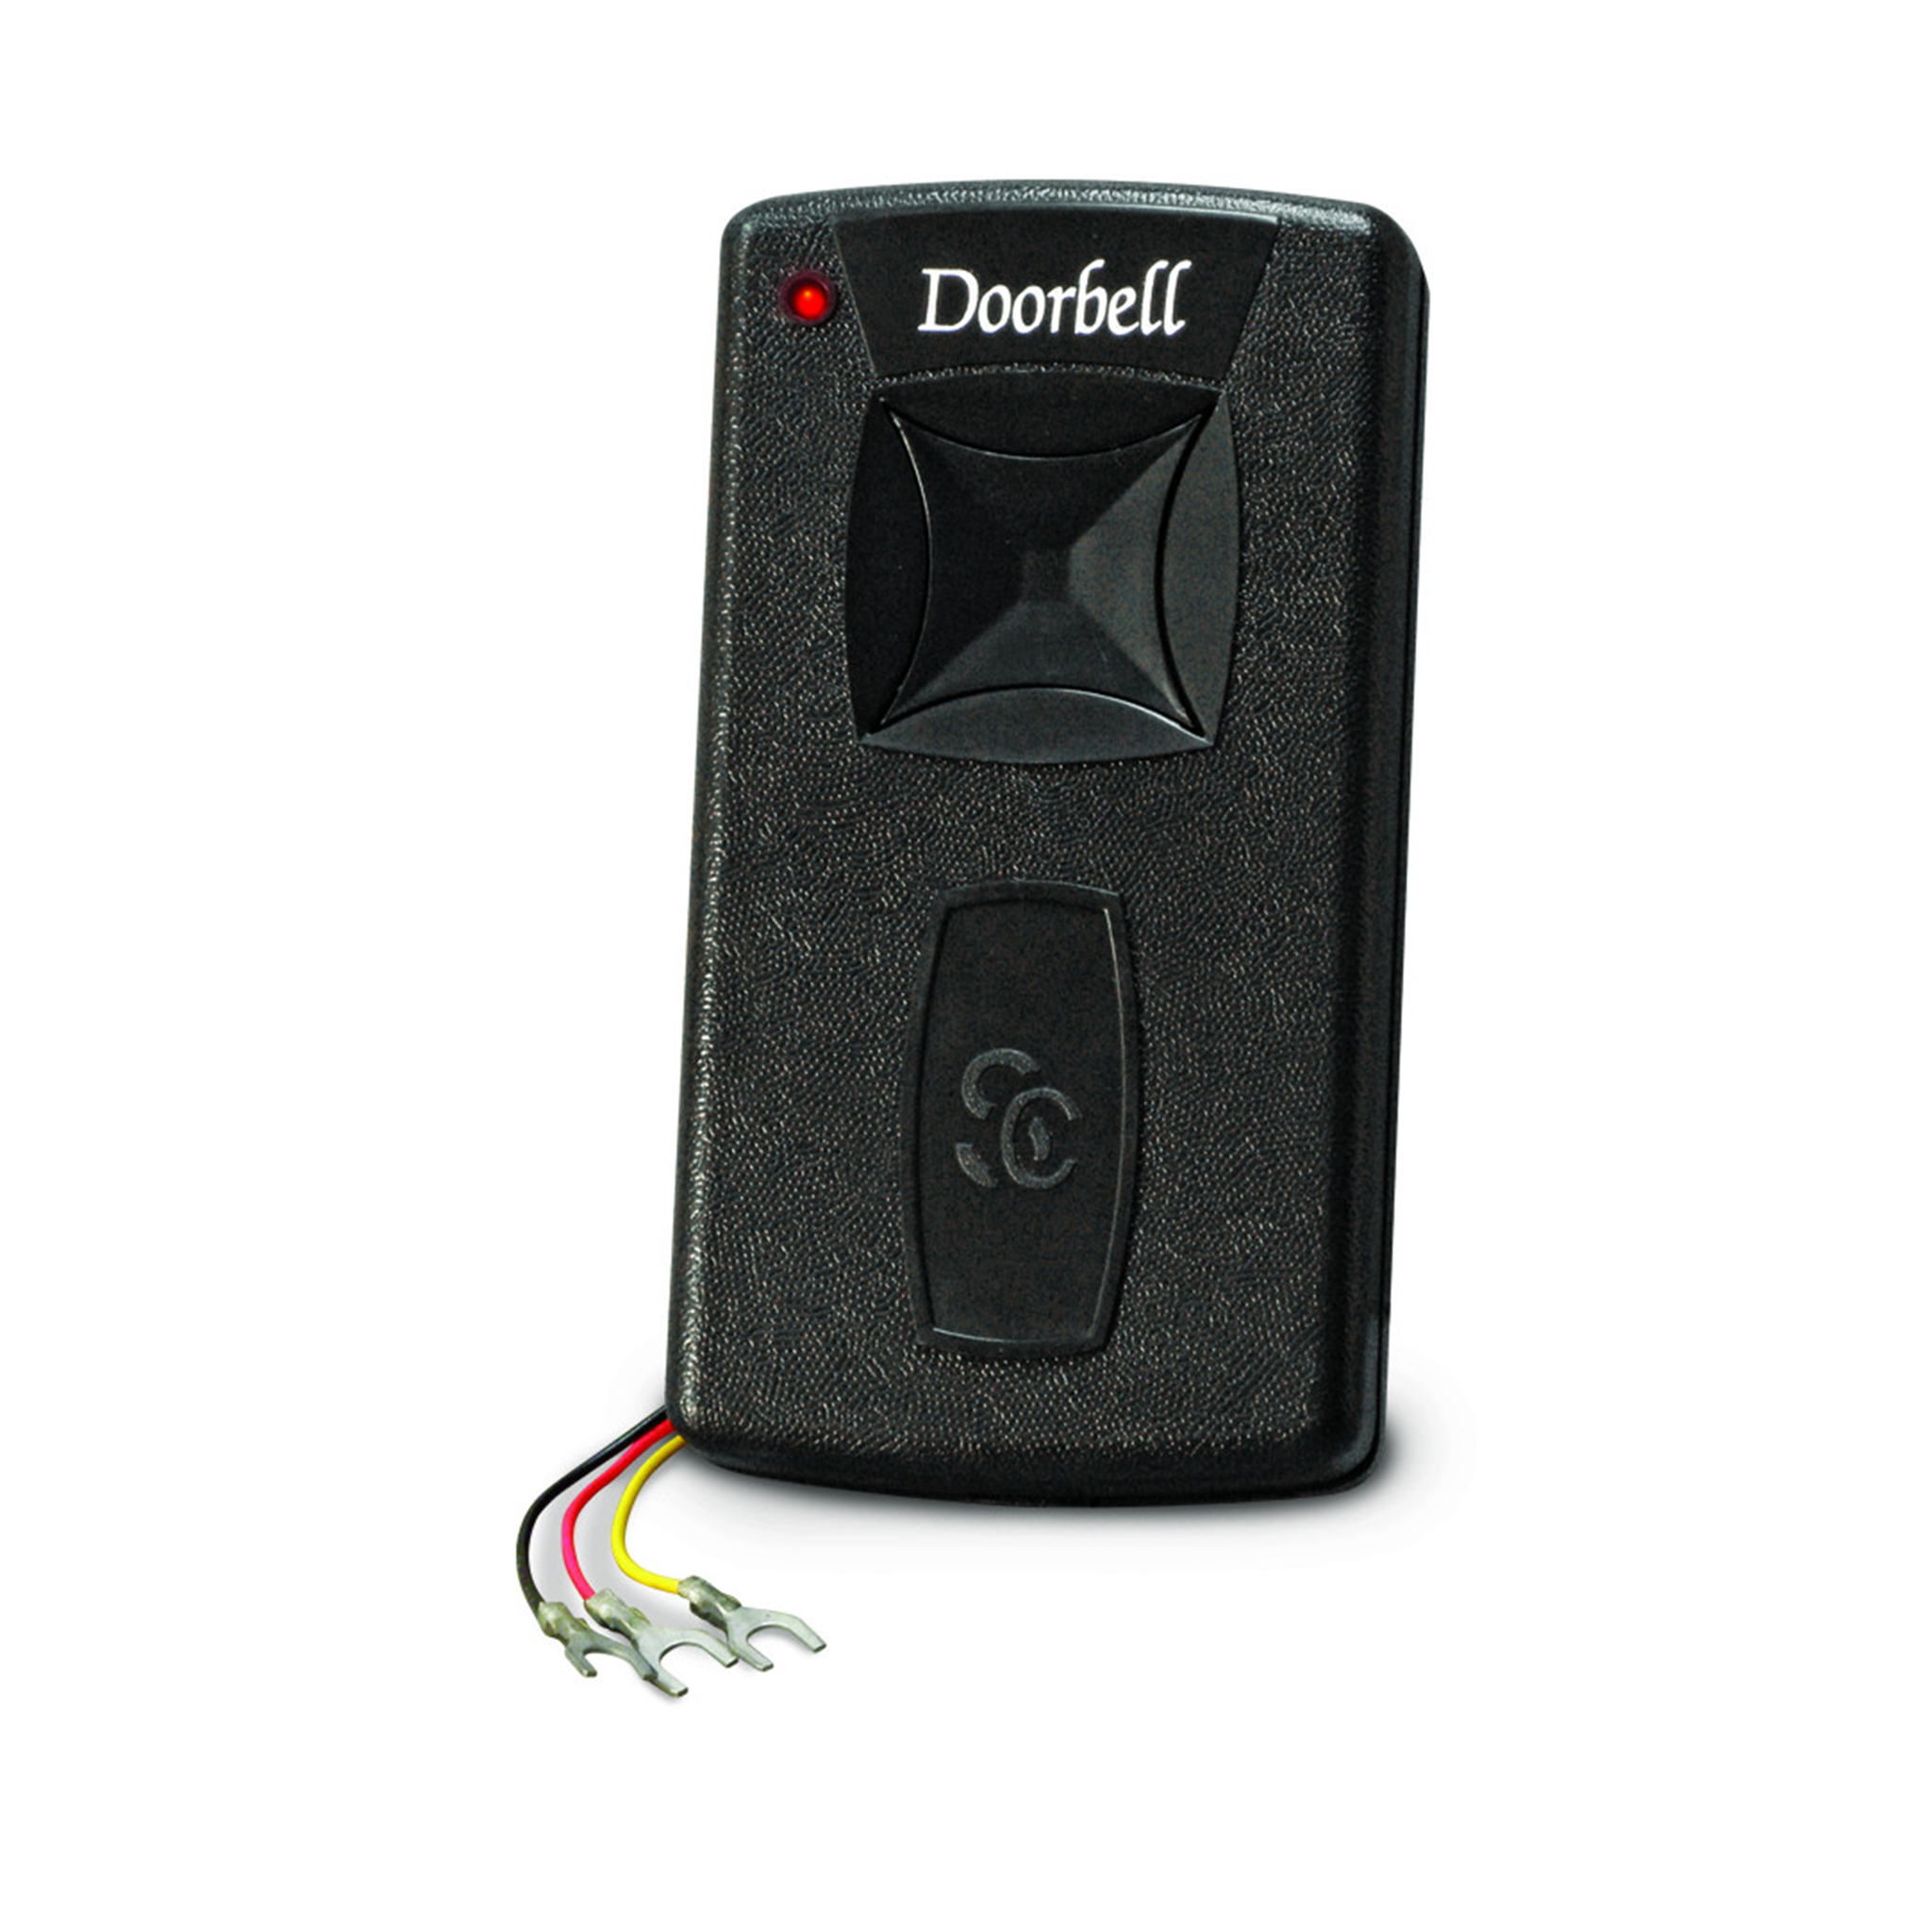 Surprising Legacy Series Direct Wired Doorbell 318 Mhz Transmitter Db1003 1 Wiring 101 Capemaxxcnl